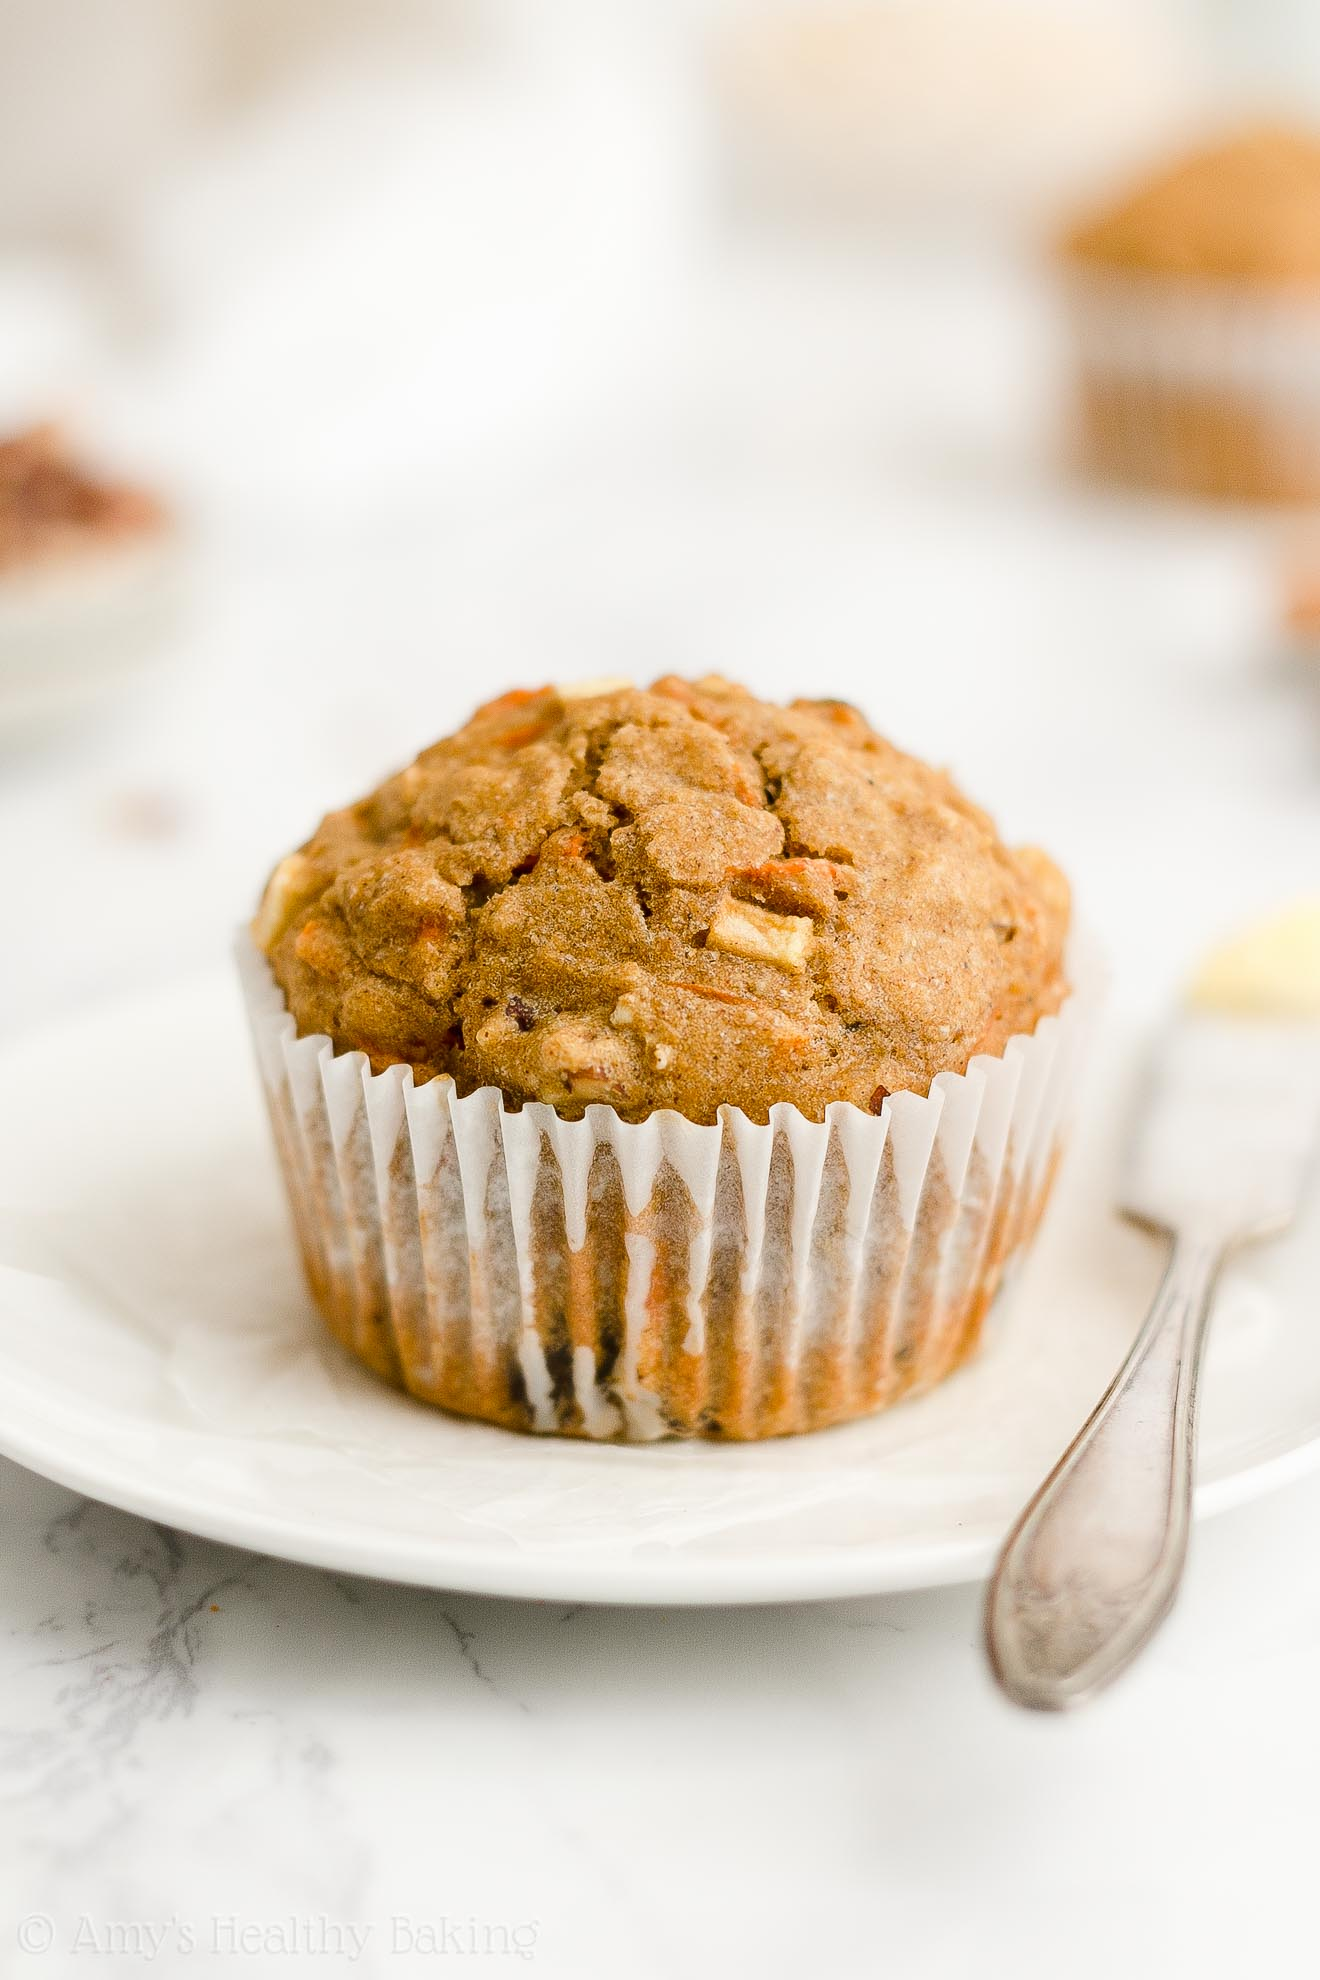 Best Easy Healthy Gluten Free Low Calorie Spiced Morning Glory Oatmeal Muffins